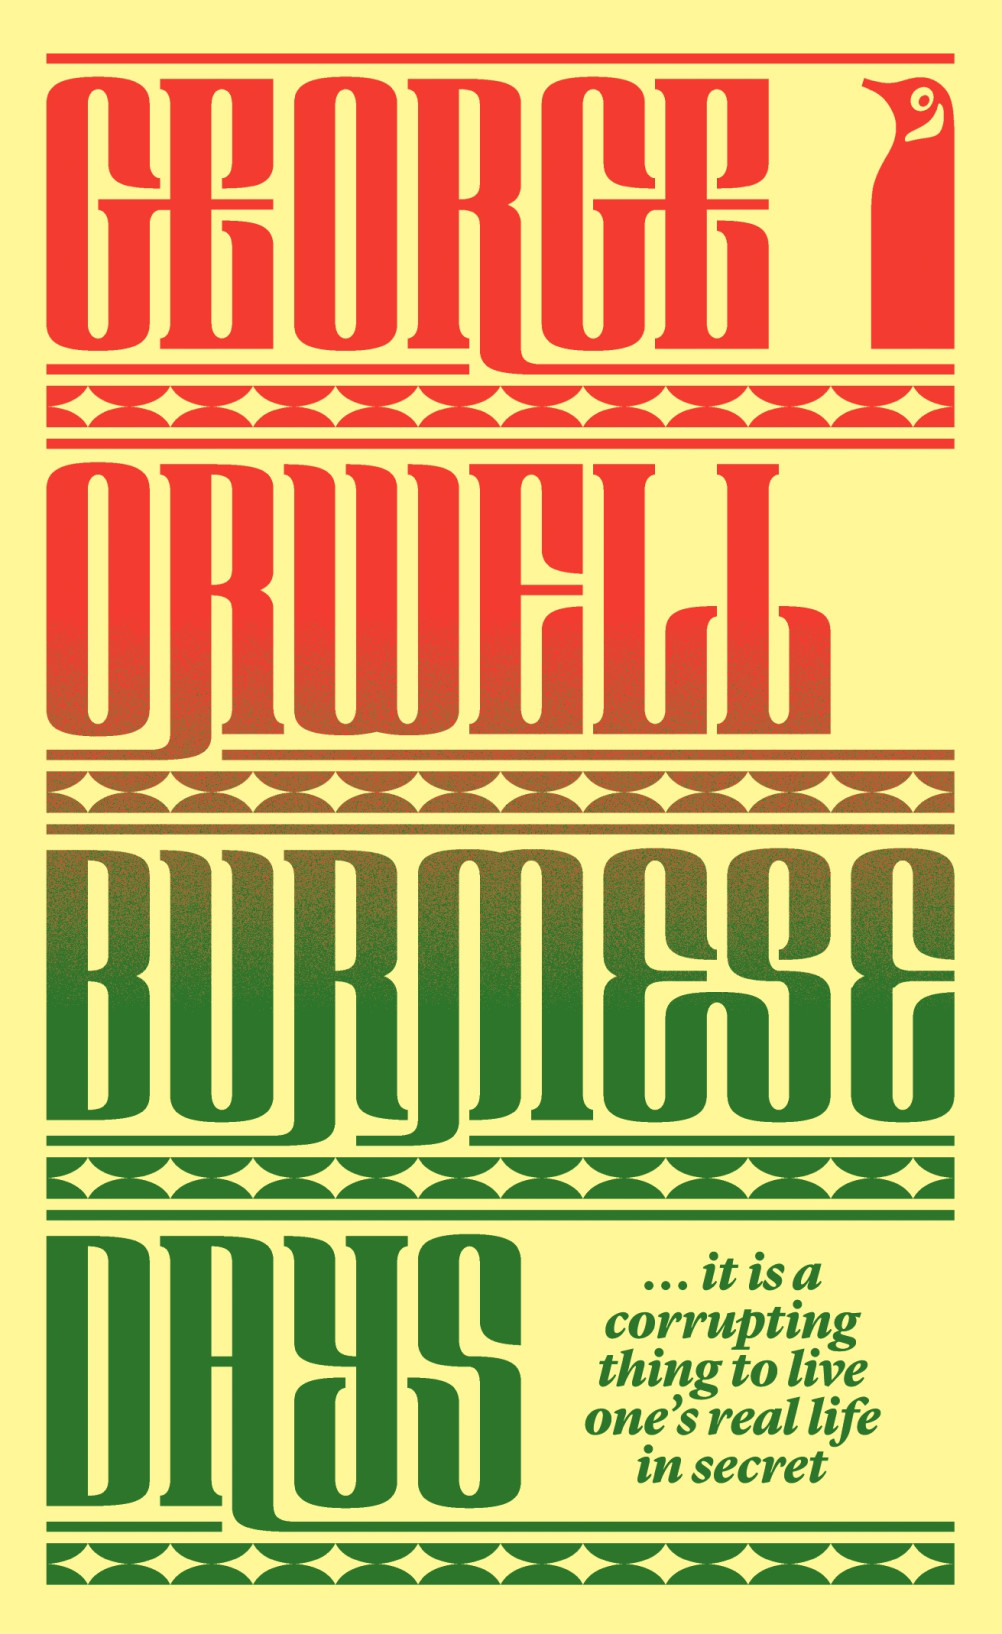 david pearson designs new series of george orwell books design week the other titles are burmese days which incorporates a redrawn penguin on the cover essays keep the aspidistra flying and the road to wigan pier